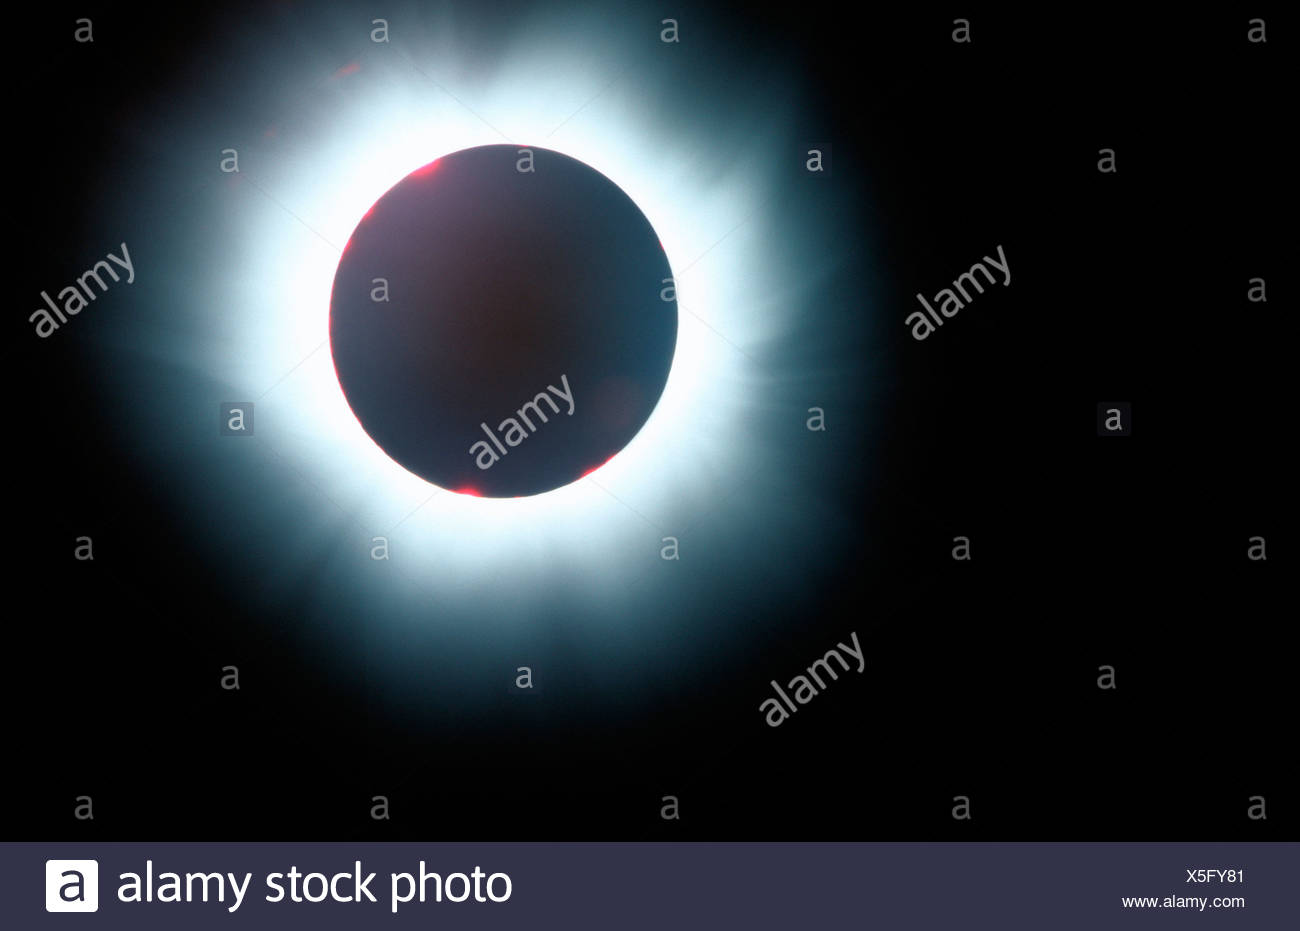 Eclipse of the sun - Stock Image